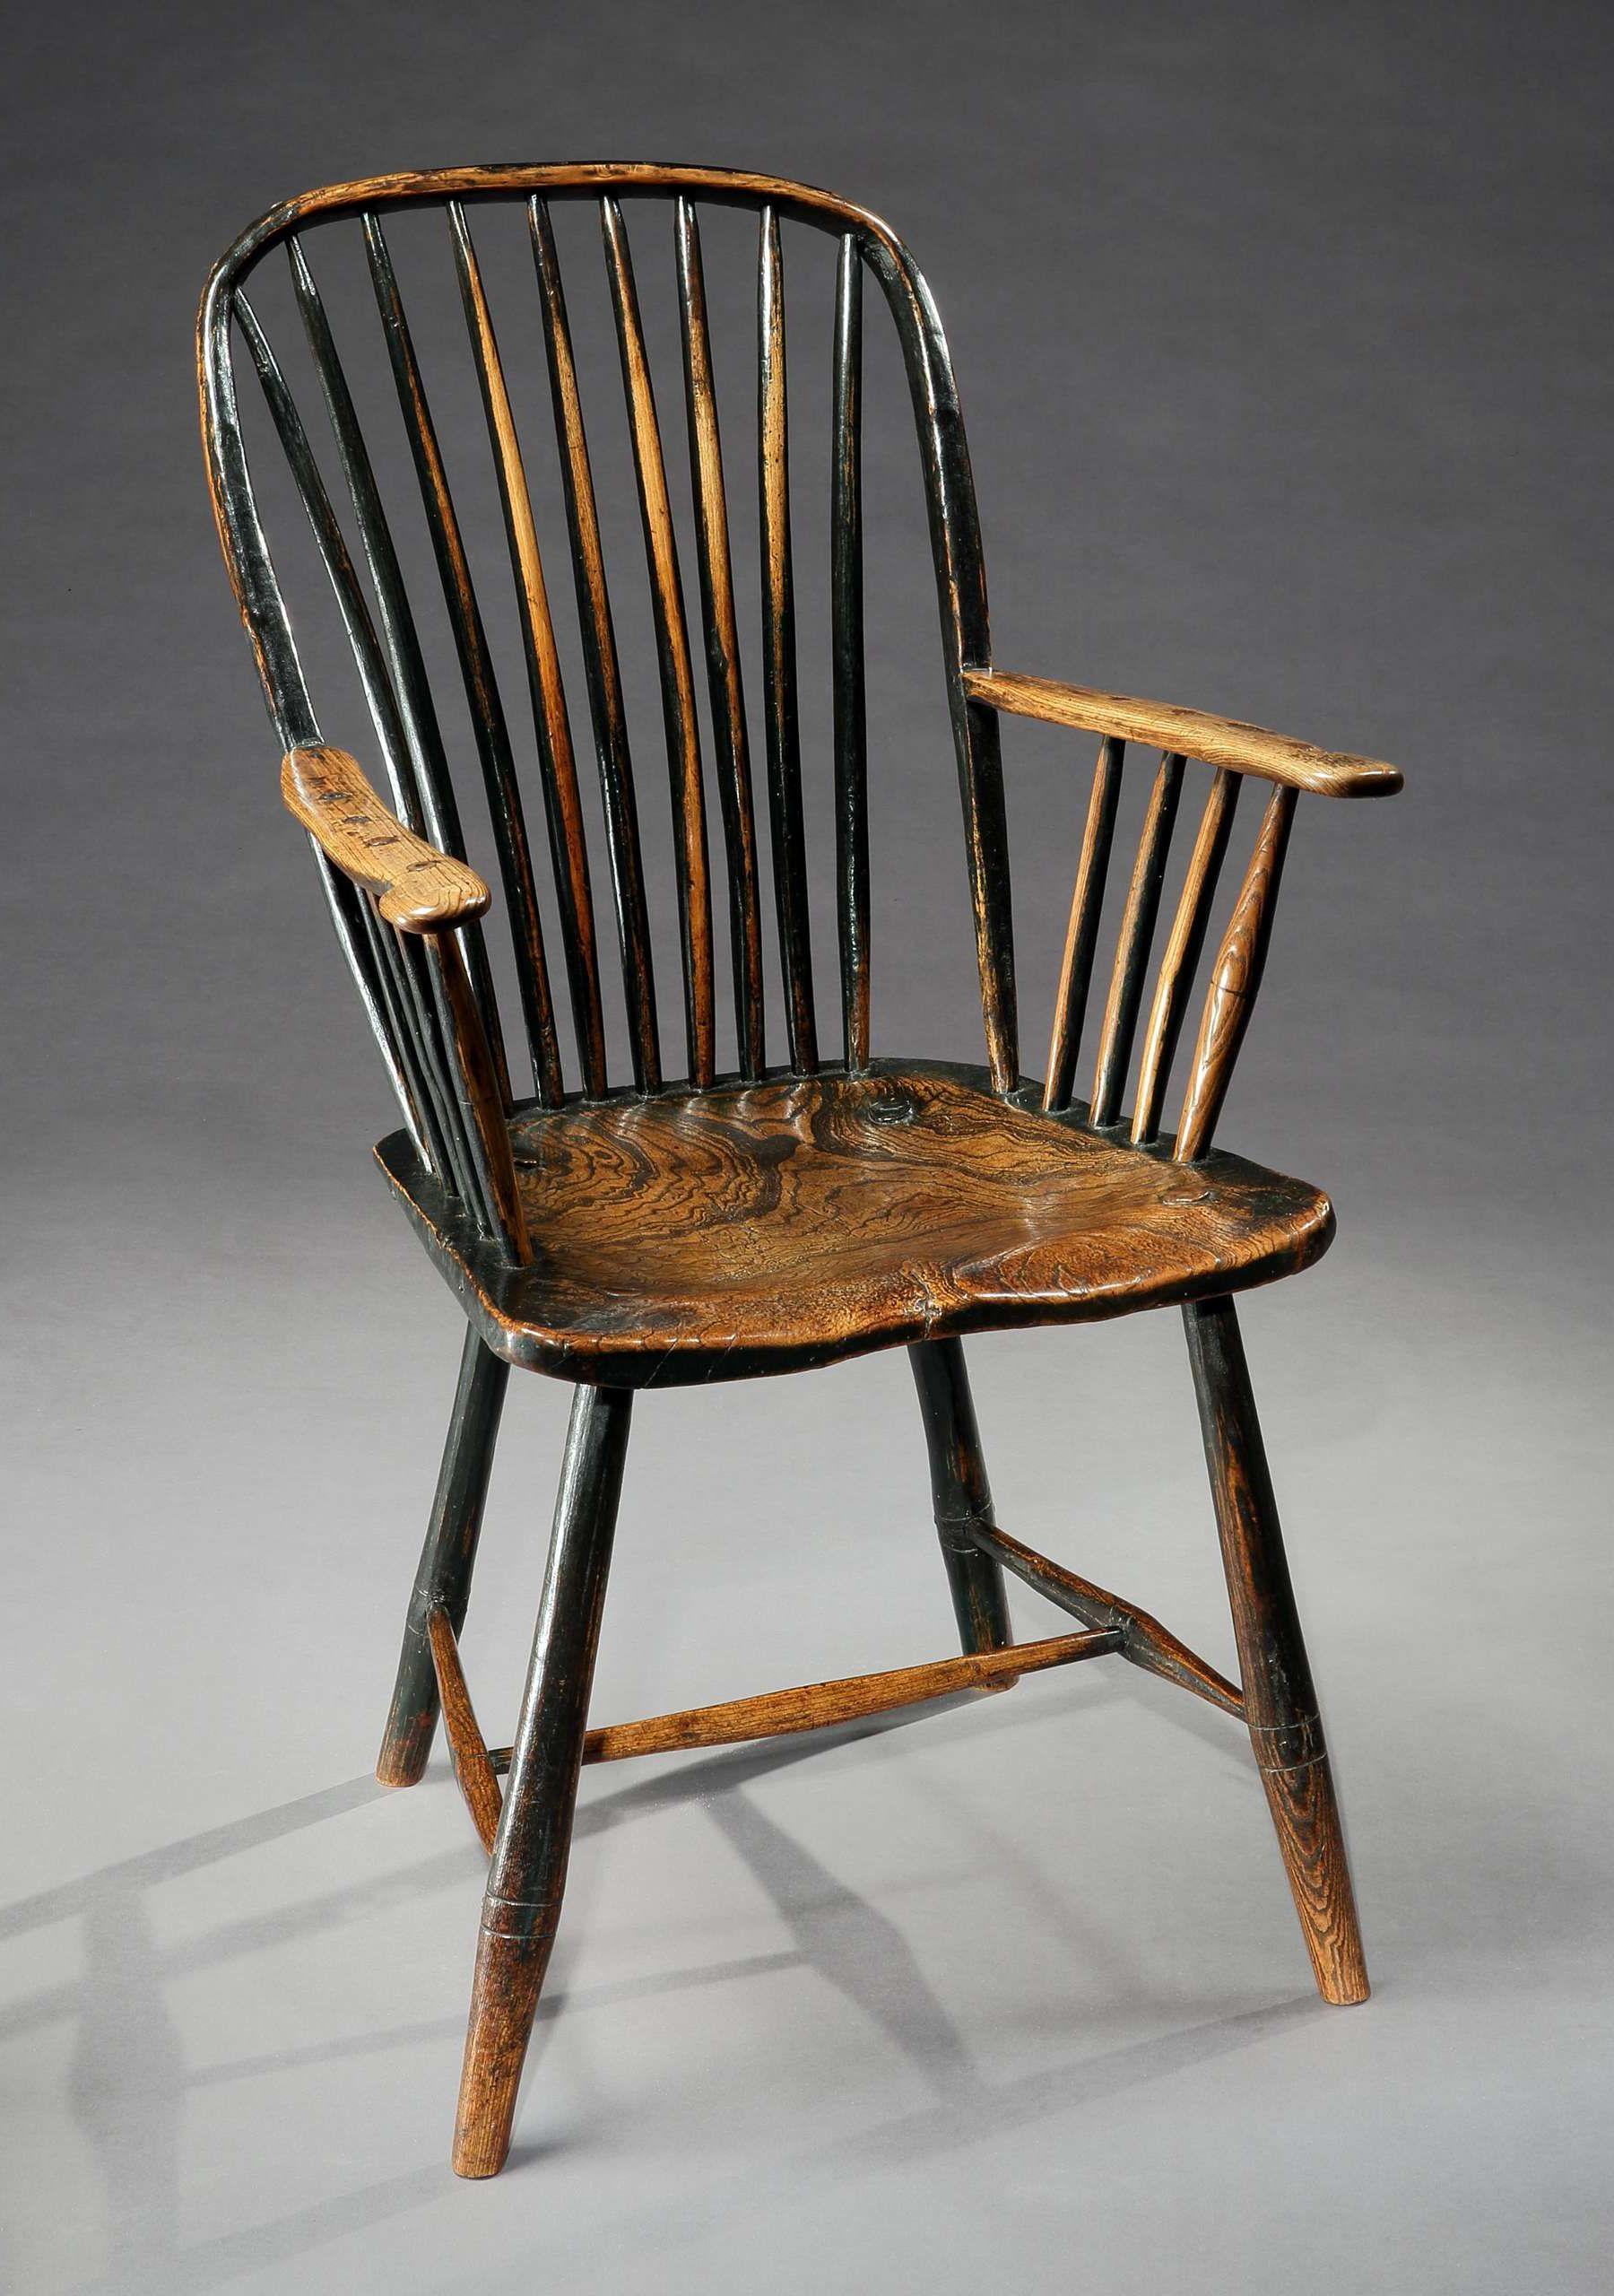 Black Windsor Chair Picture This Lxxiii Pegs And 39tails